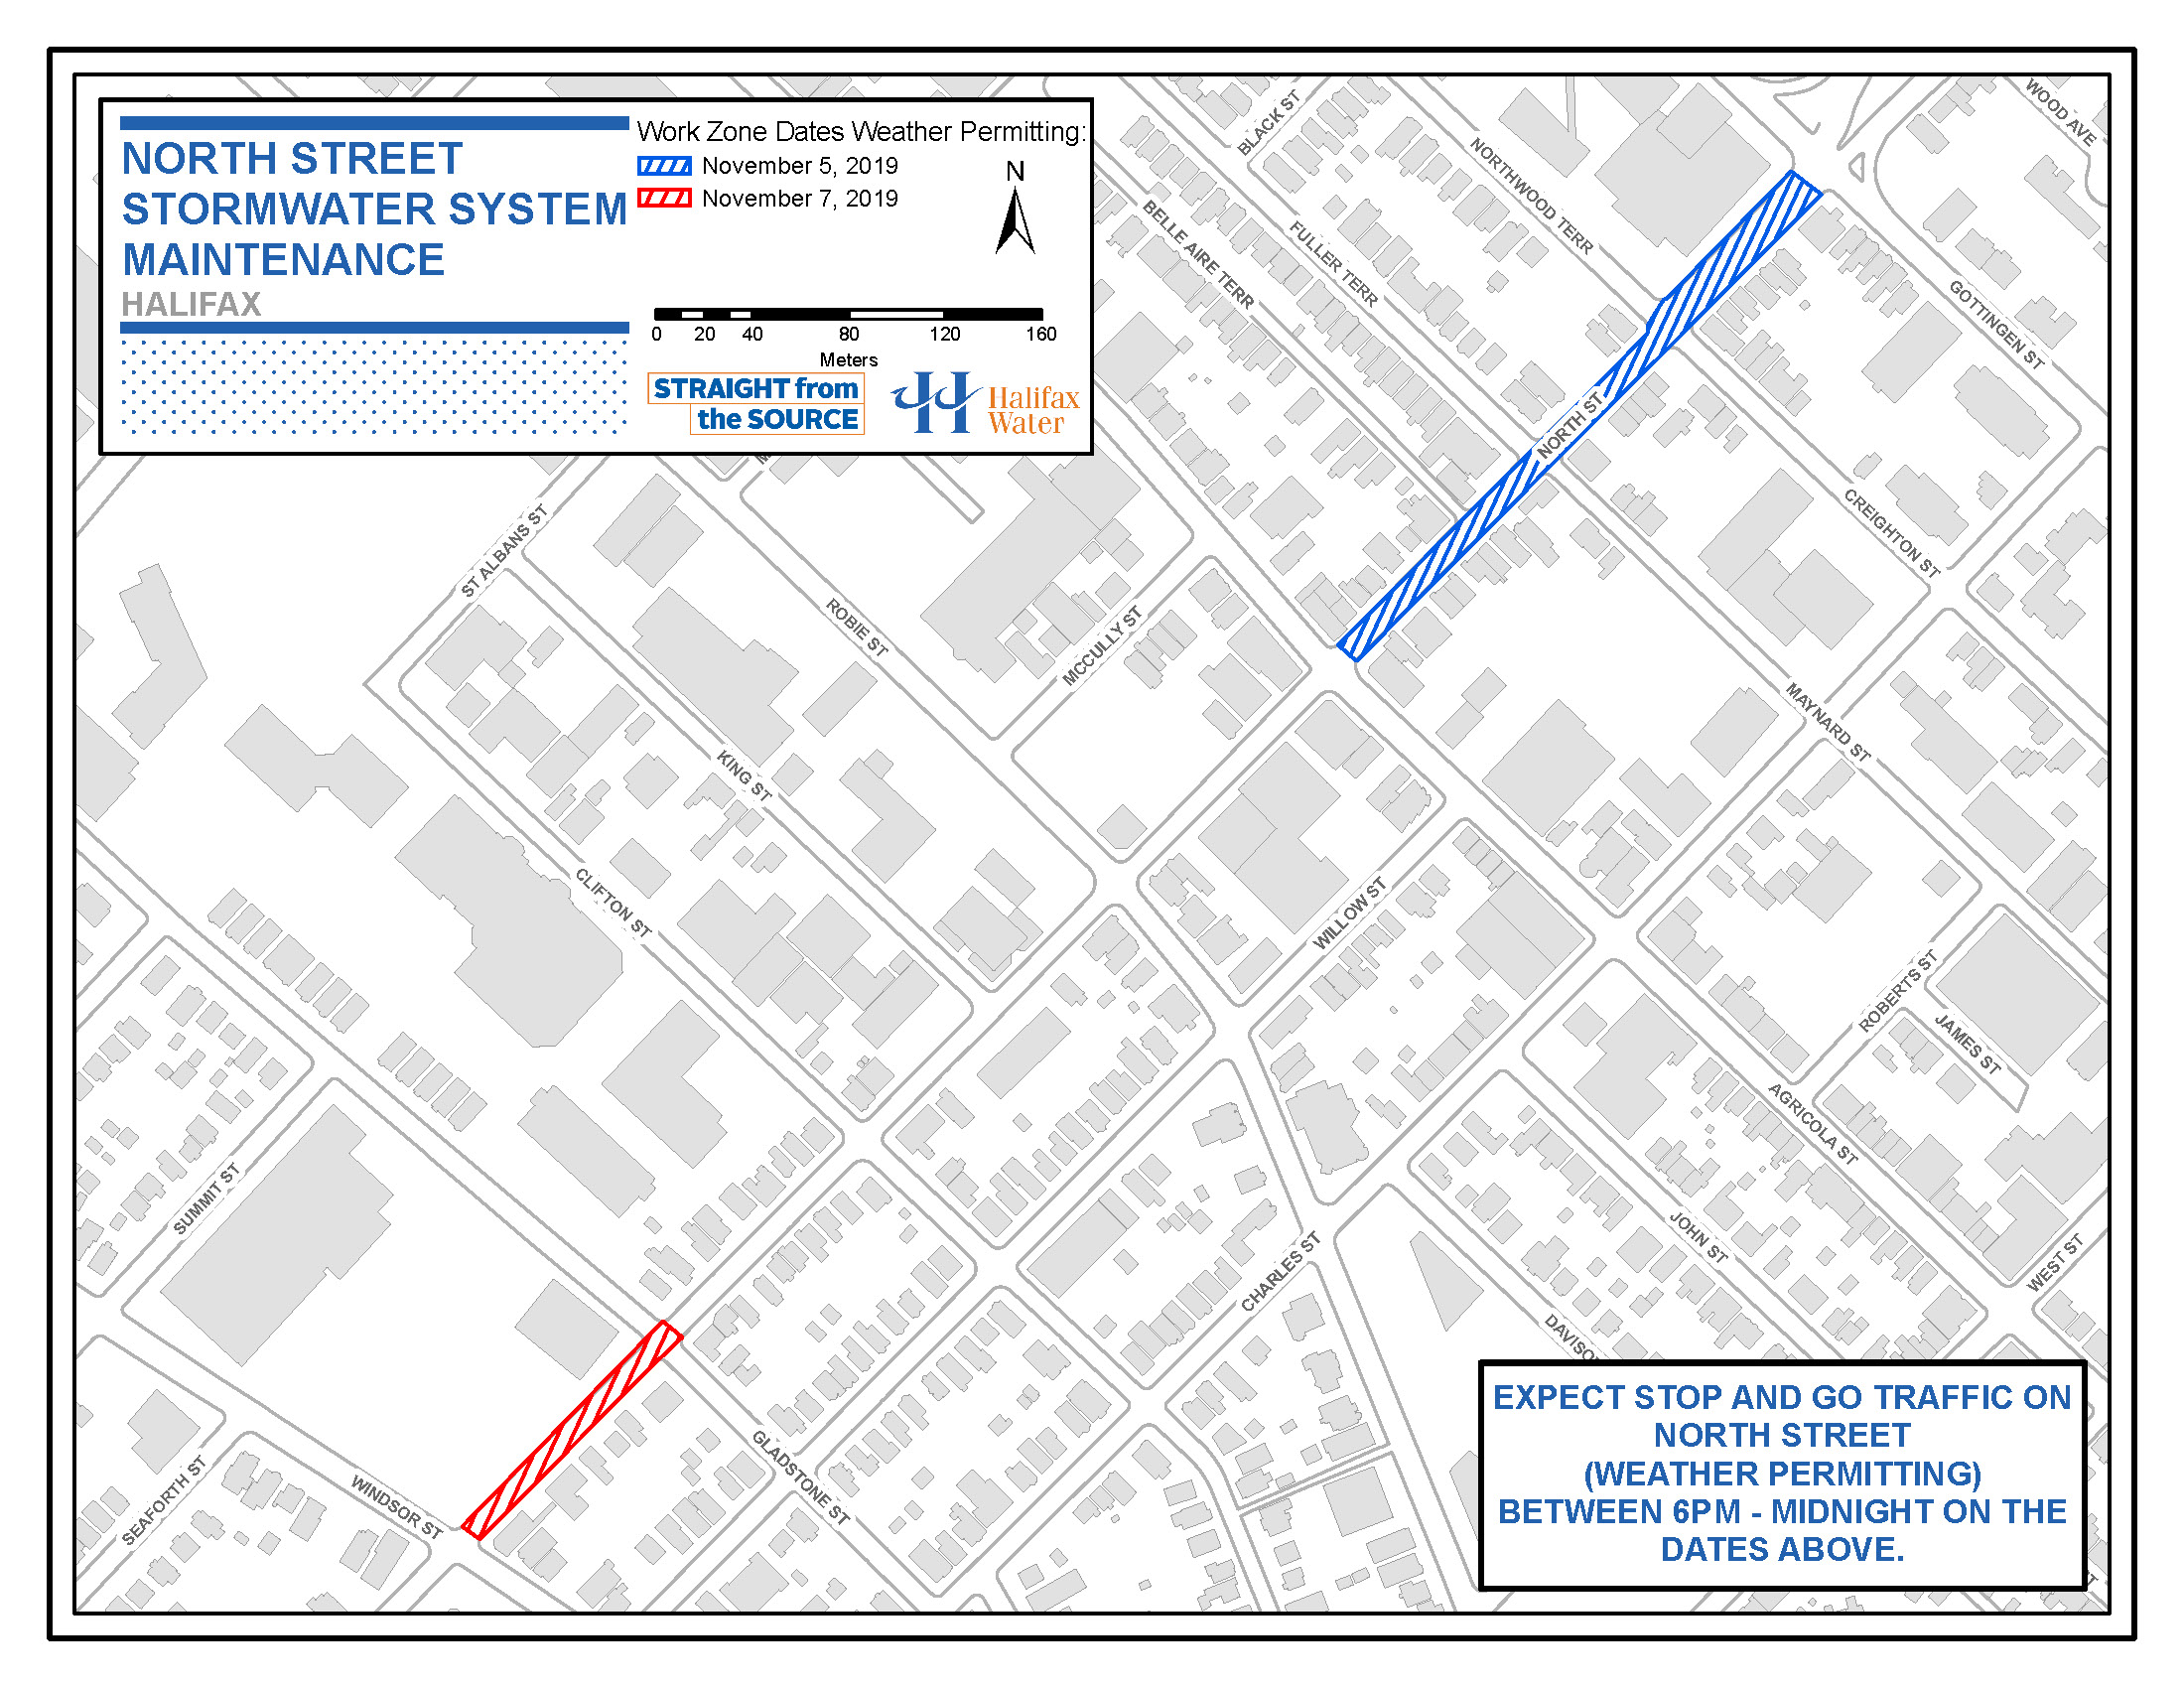 Halifax Water PSA Map - October 31 2019 - North Street - Stormwater System Maintenance